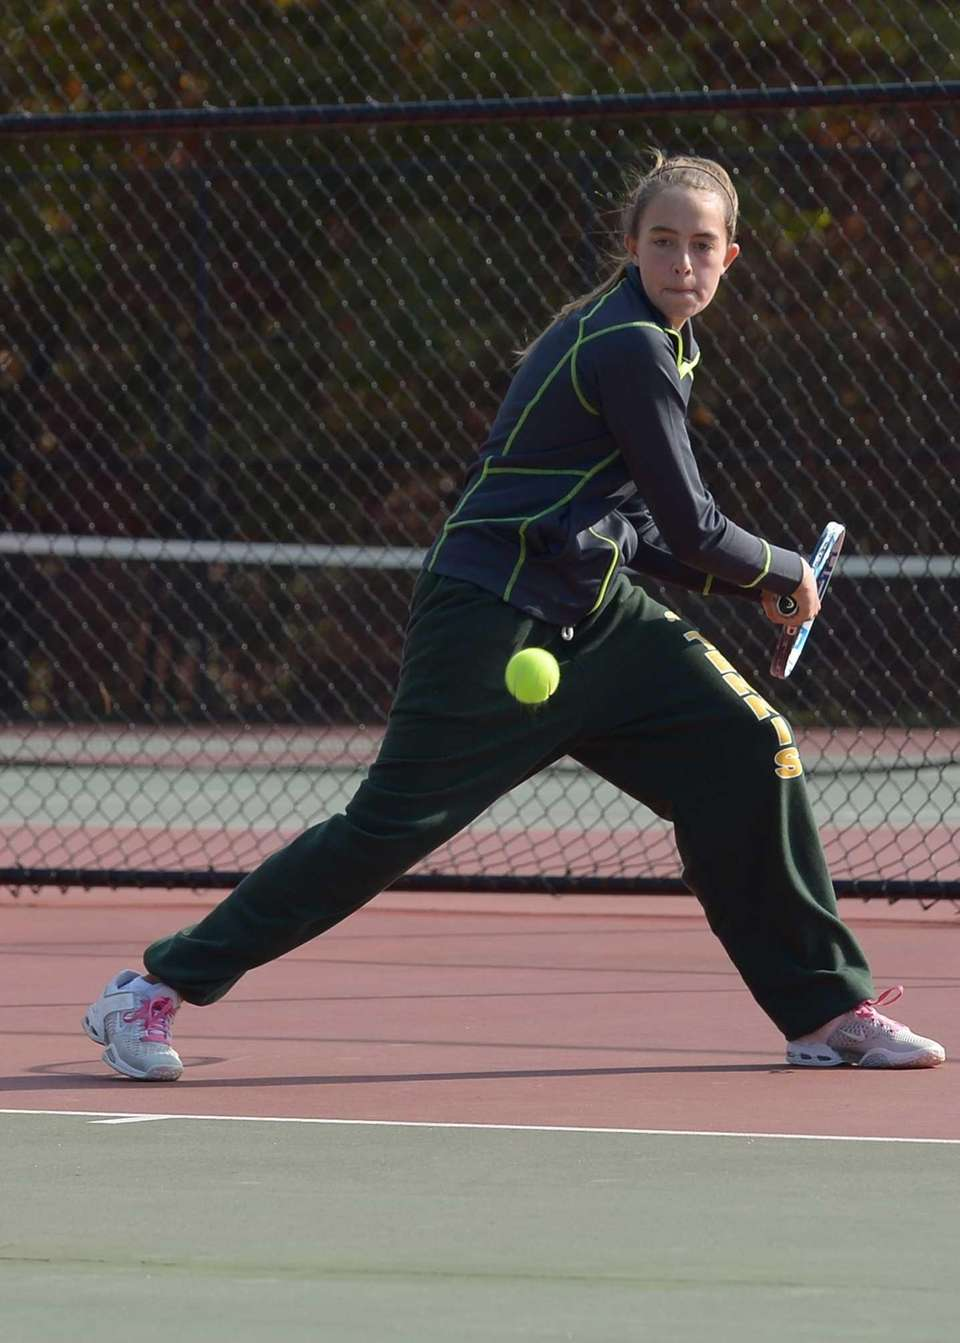 Emily Fernandez of William Floyd looks to return